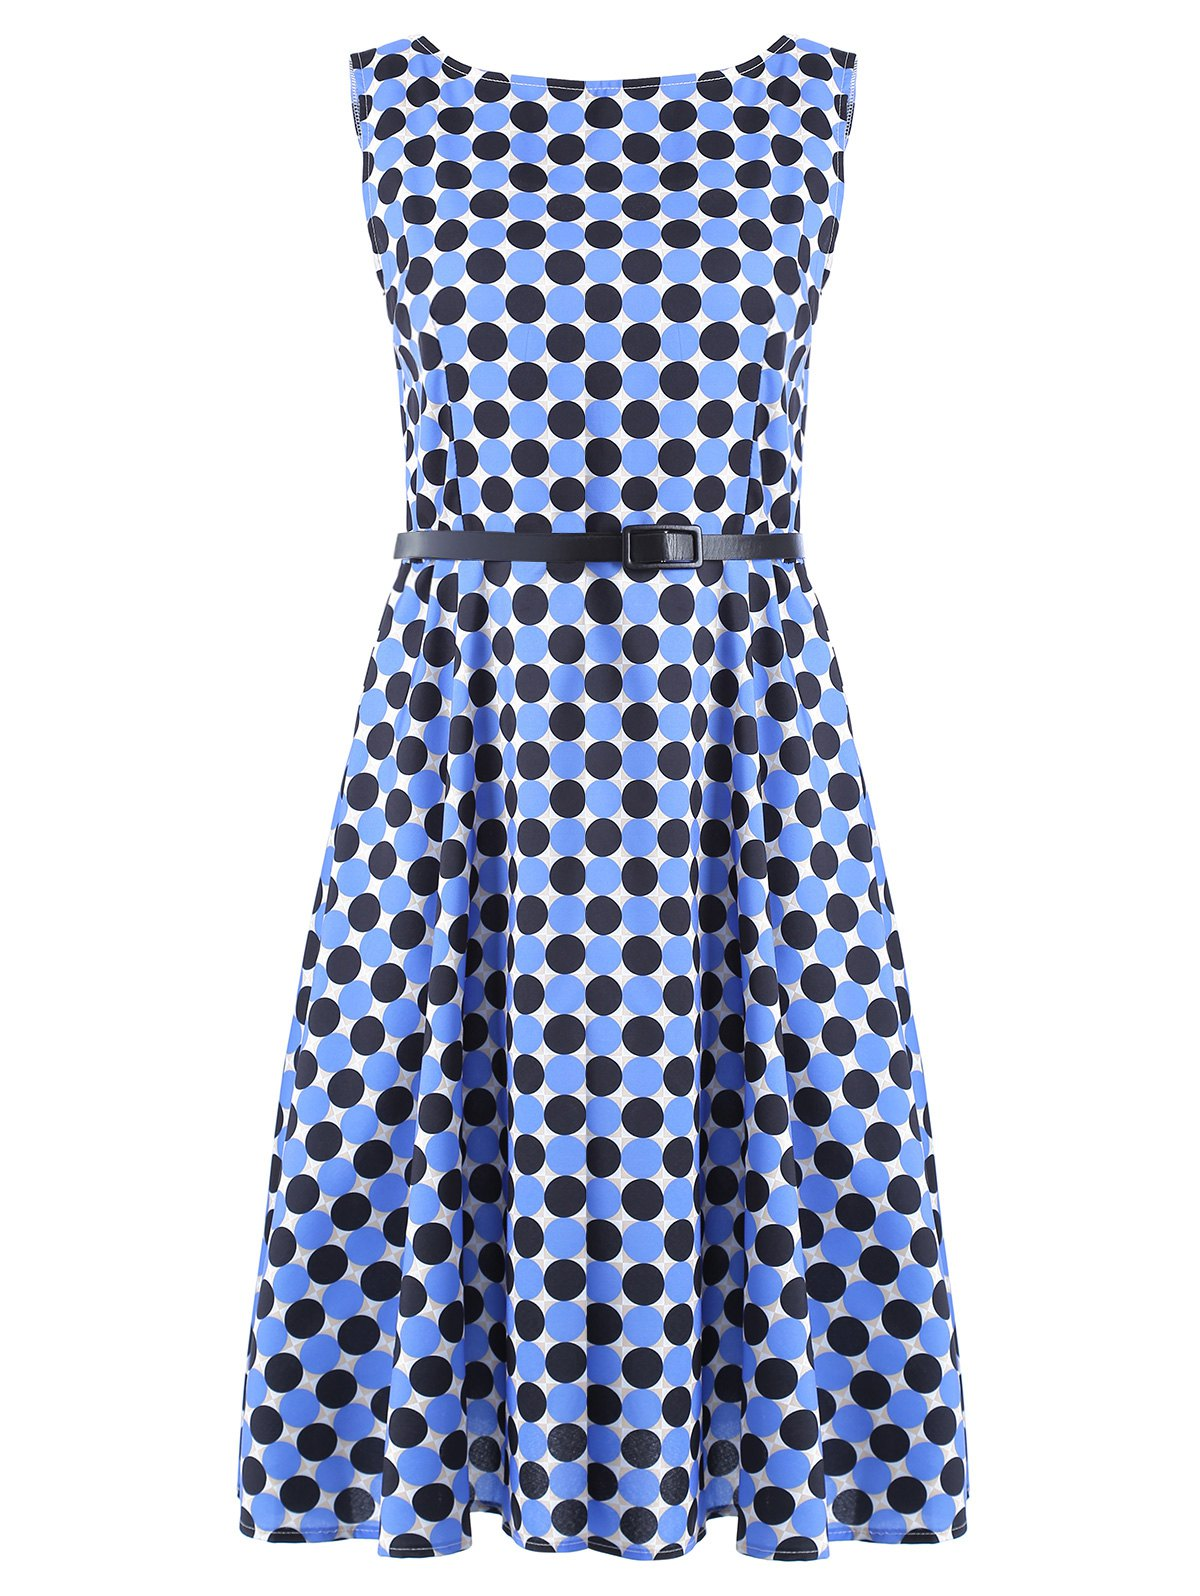 Vintage Women's Round Neck Polka Dot Print Sleeveless Dress - BLUE/BLACK L